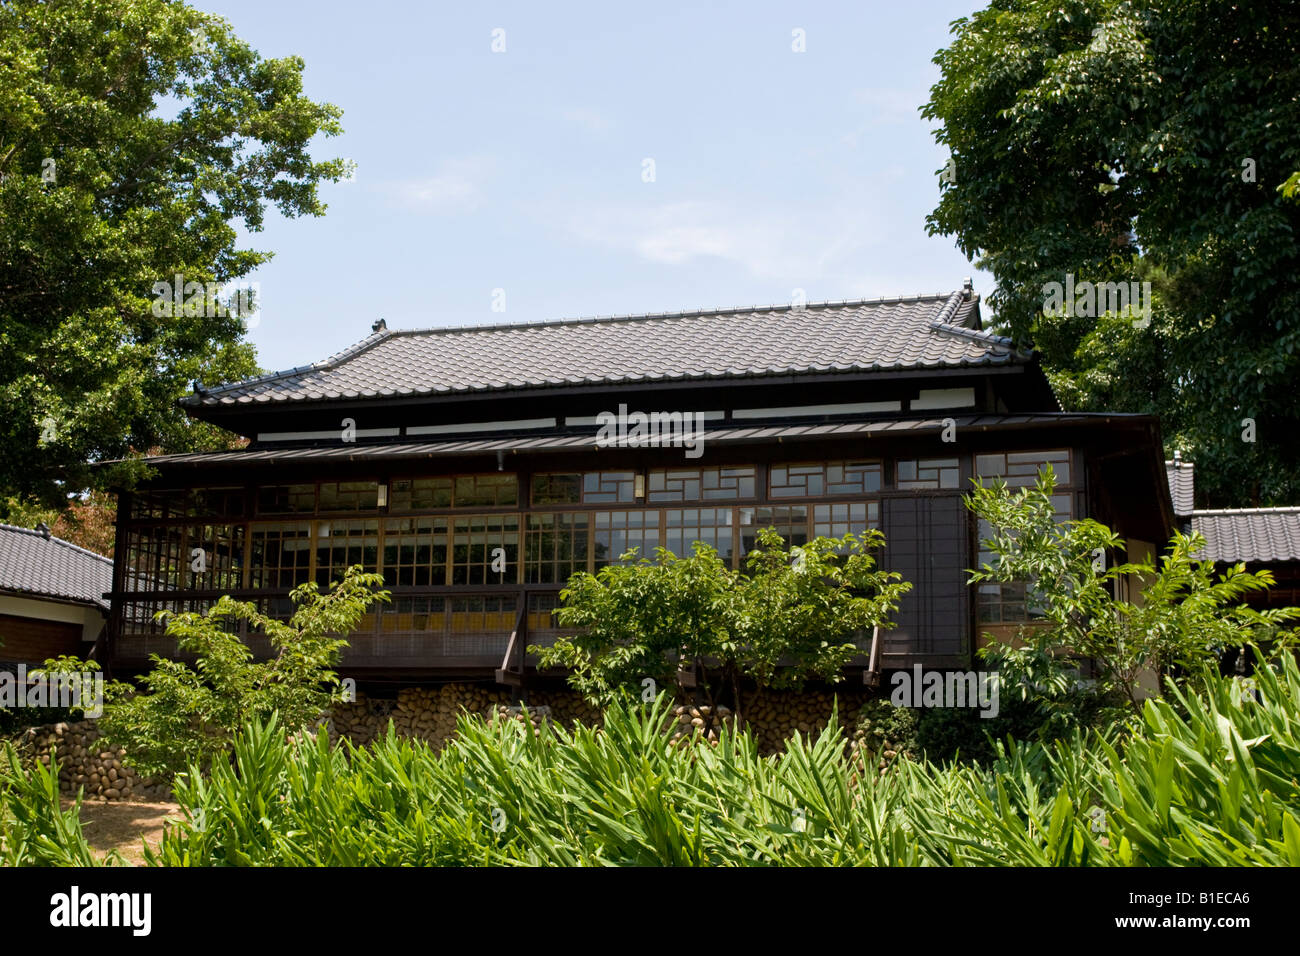 Early 20th century japanese style house in hsinchu park hsinchu taiwan roc